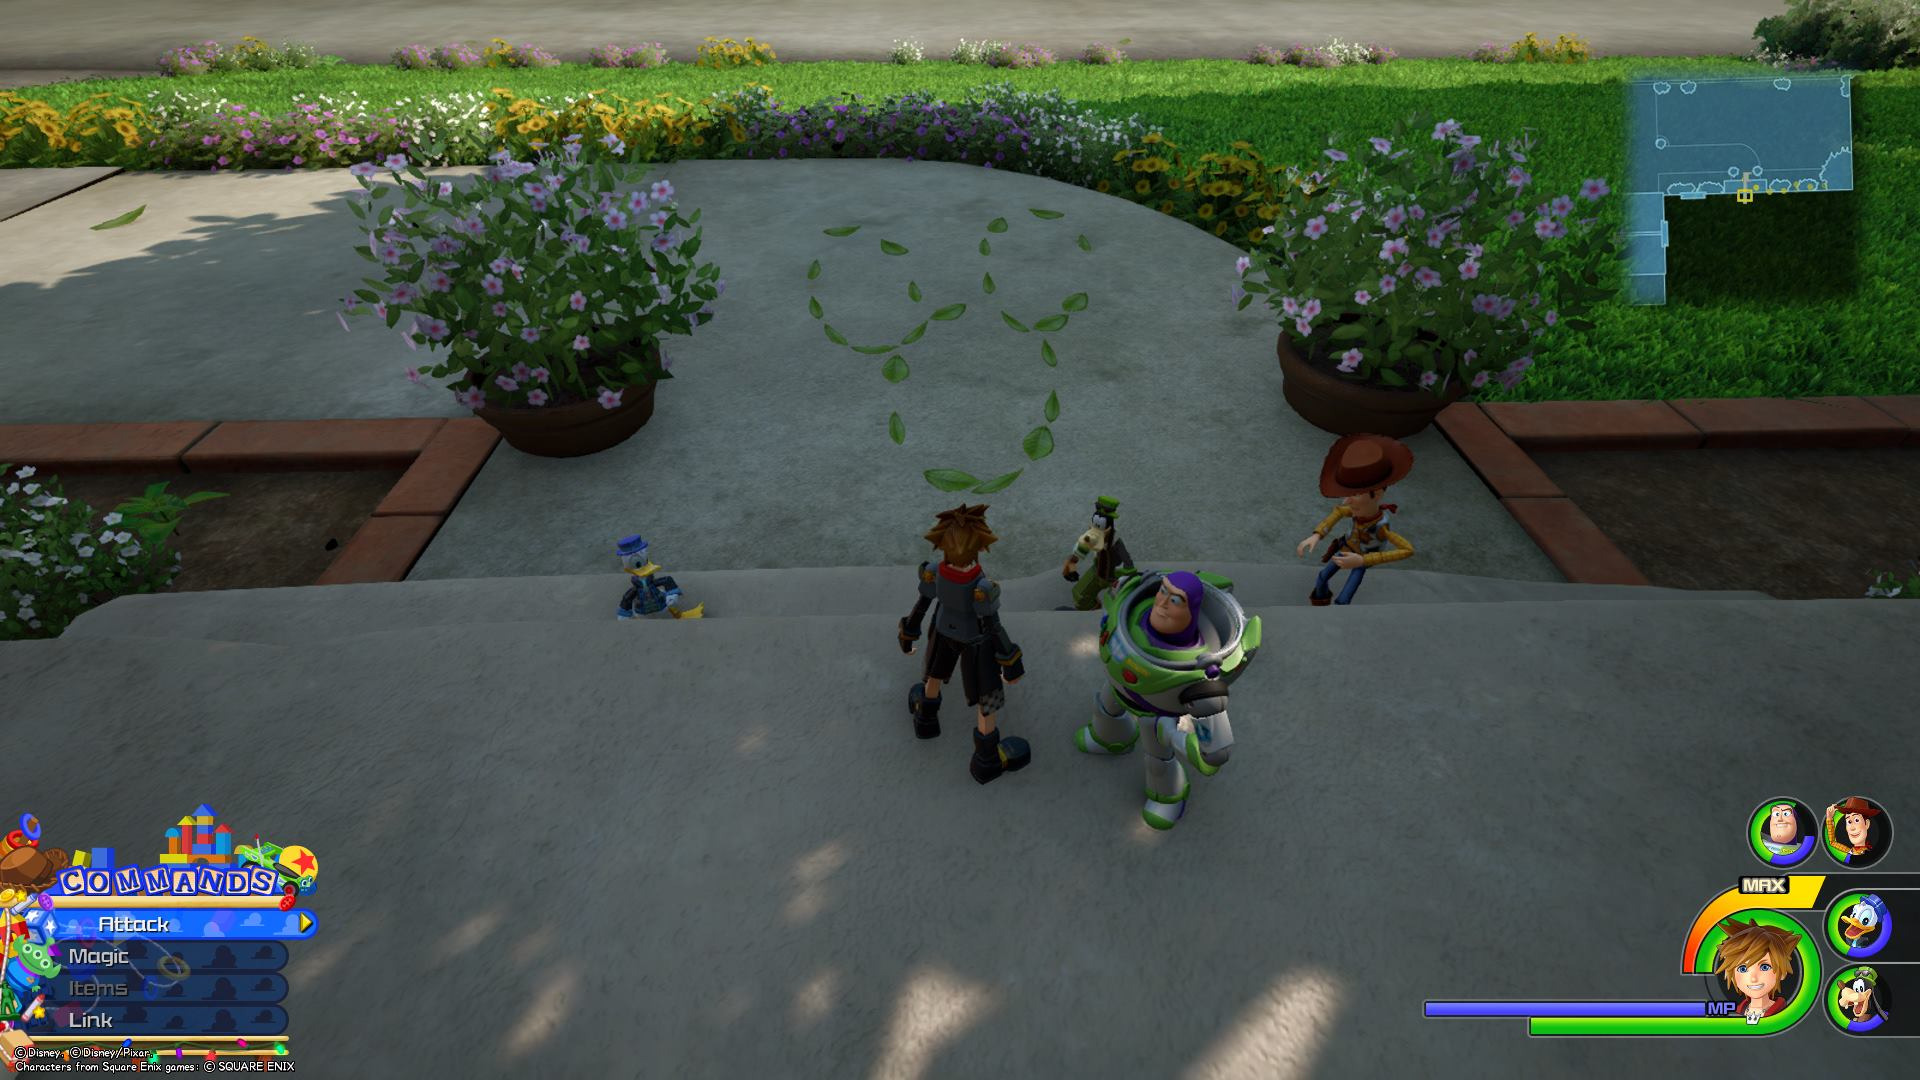 Emblem 3 - All Toy Box Lucky Emblems in Kingdom Hearts 3